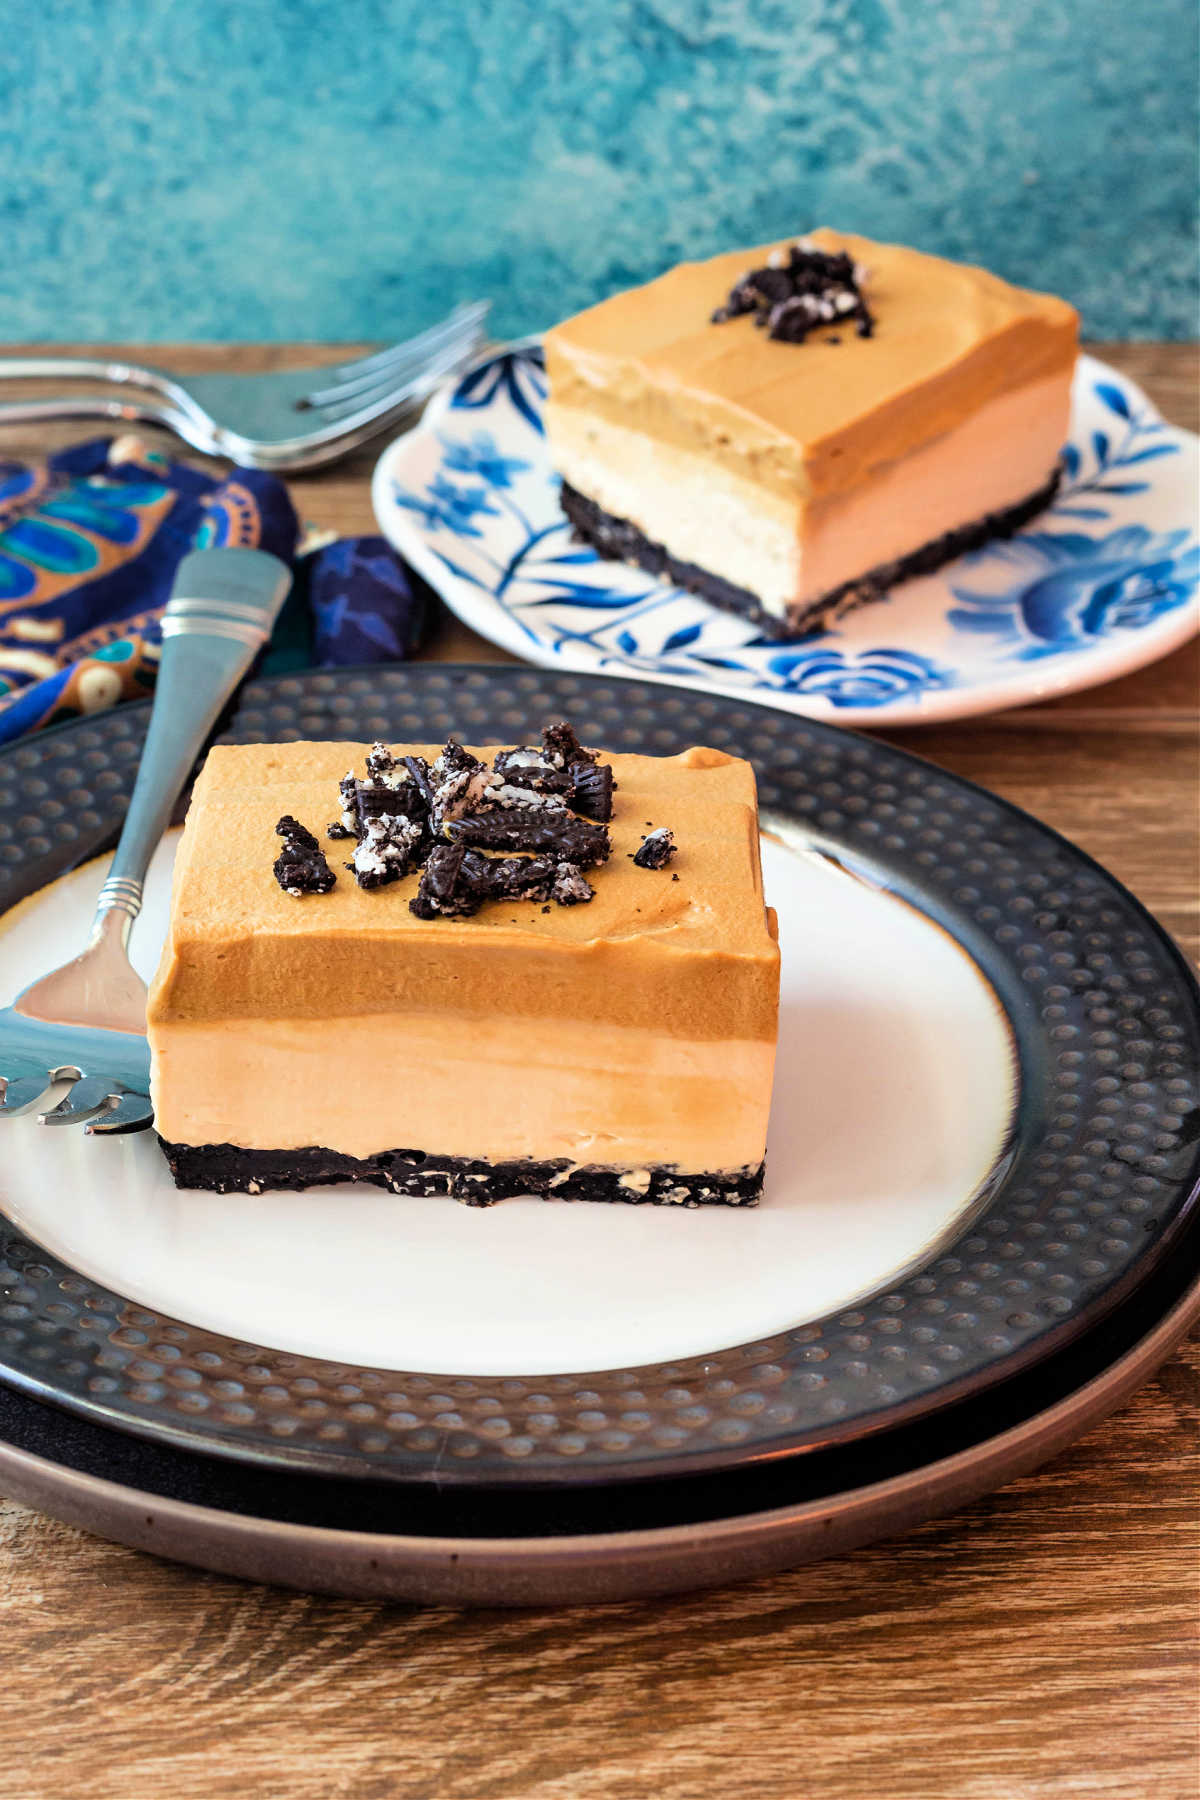 A vertical image with a square slice of dessert with chocolate crust, a tan cheesecake layer, and a darker tan whipped coffee layer topped with crushed chocolate cookies on a plate with a similar plated dessert in the background.